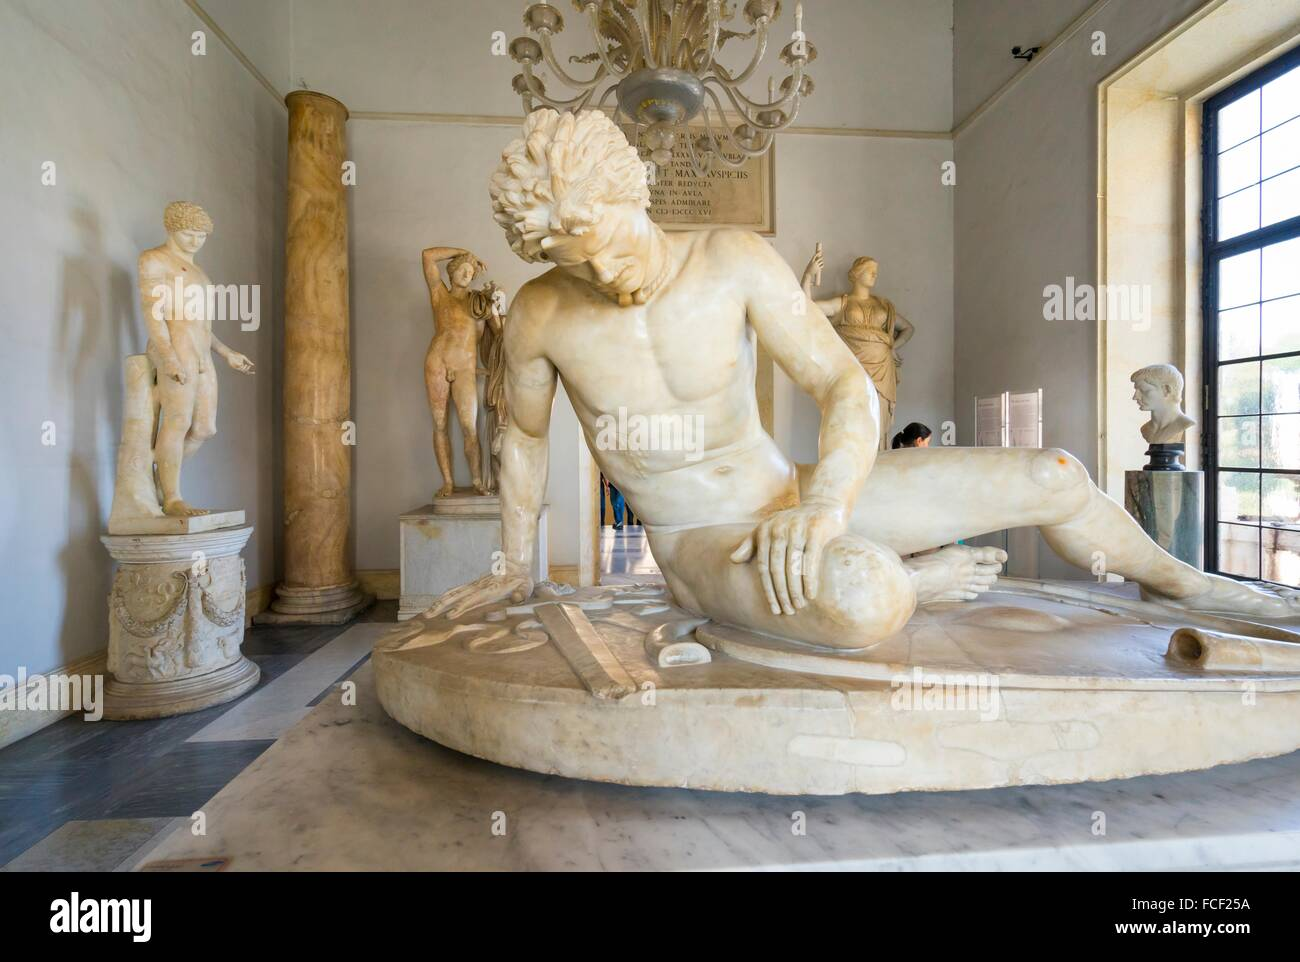 The Dying Galatian Scultpure, Palazzo Nuovo, Capitolini Museums, Rome, Italy, Europe. - Stock Image